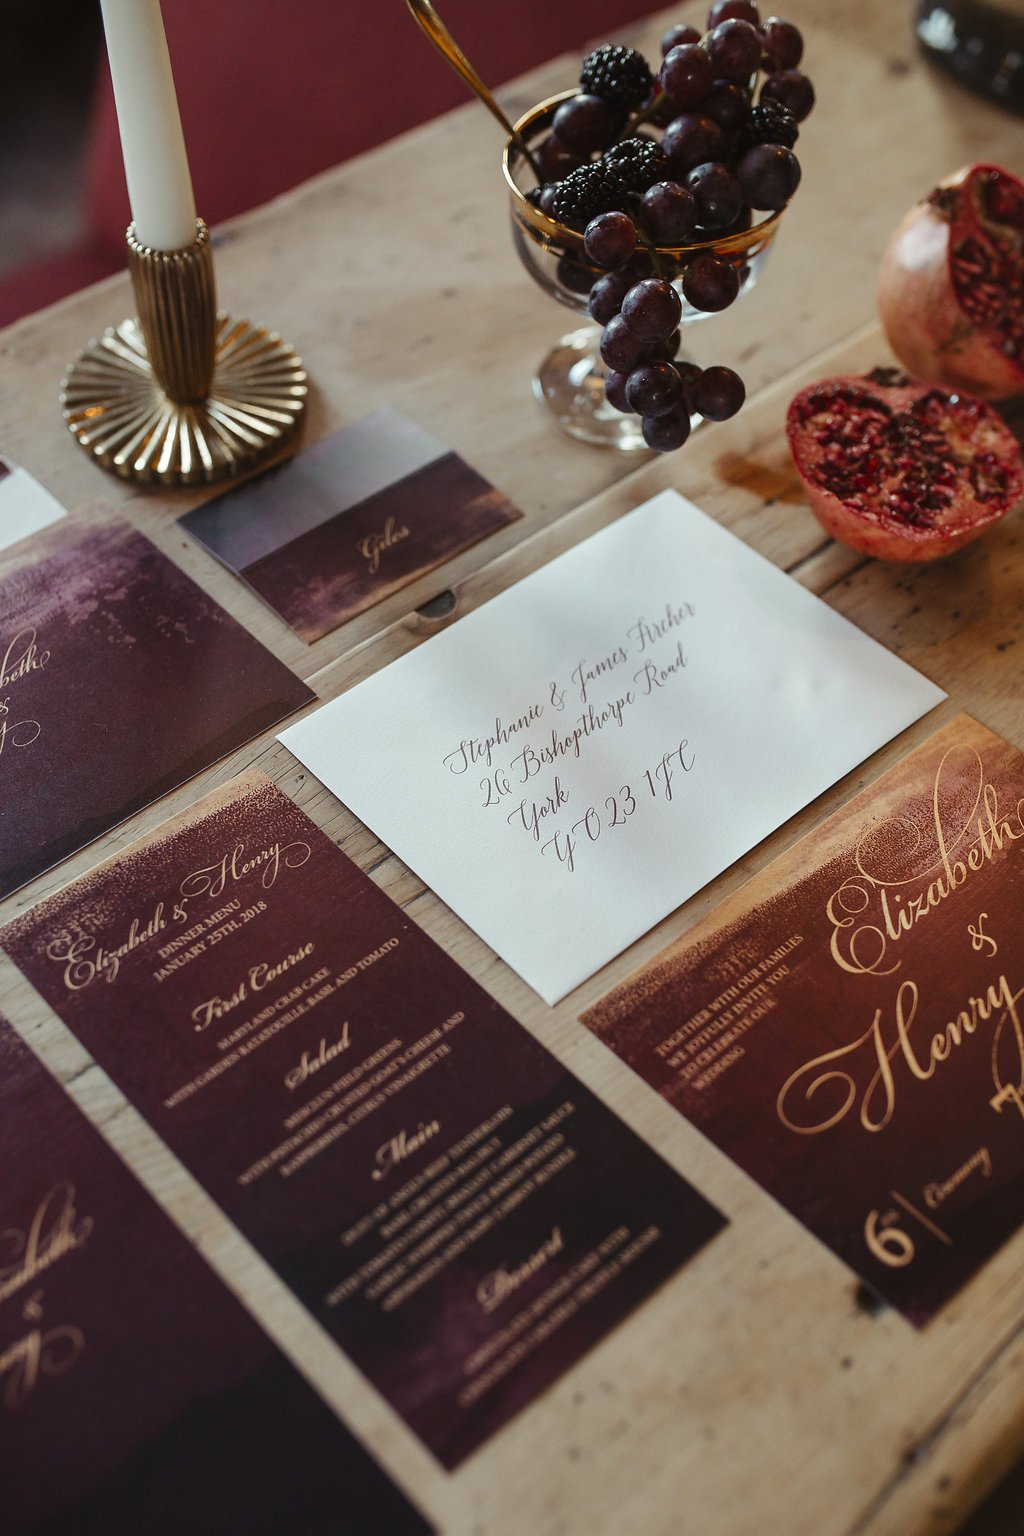 claret and gold, bespoke wedding stationery, regal wedding inspiration, regal bride and groom, modern wedding, elegant wedding, beautiful wedding, sumptuous wedding, luxe wedding, surrey wedding, sussex wedding, hampshire wedding, london wedding, wedding ideas, wedding inspiration